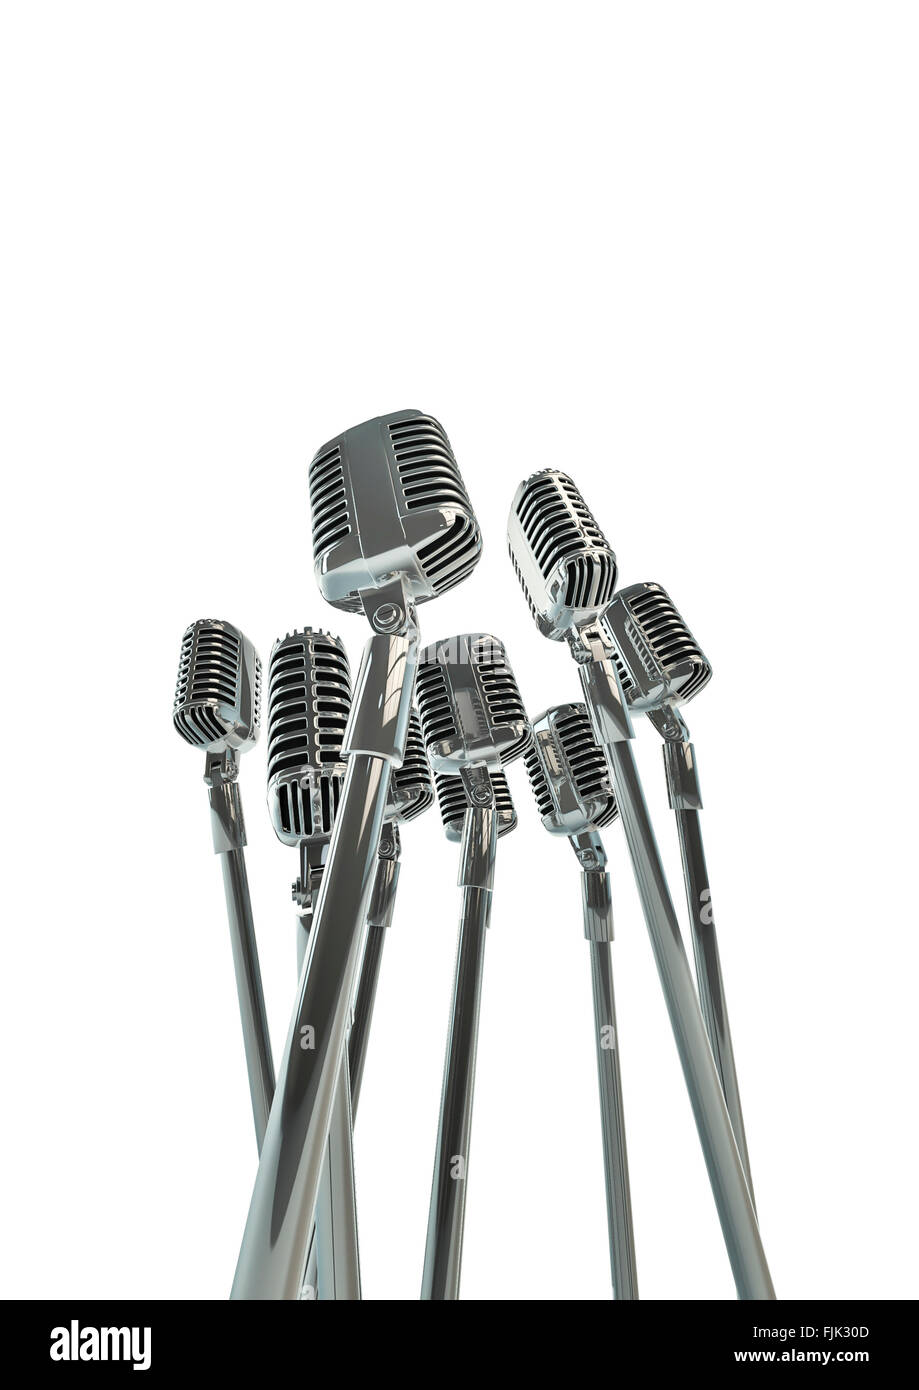 retro microphones 3d render of group of old fashioned classic